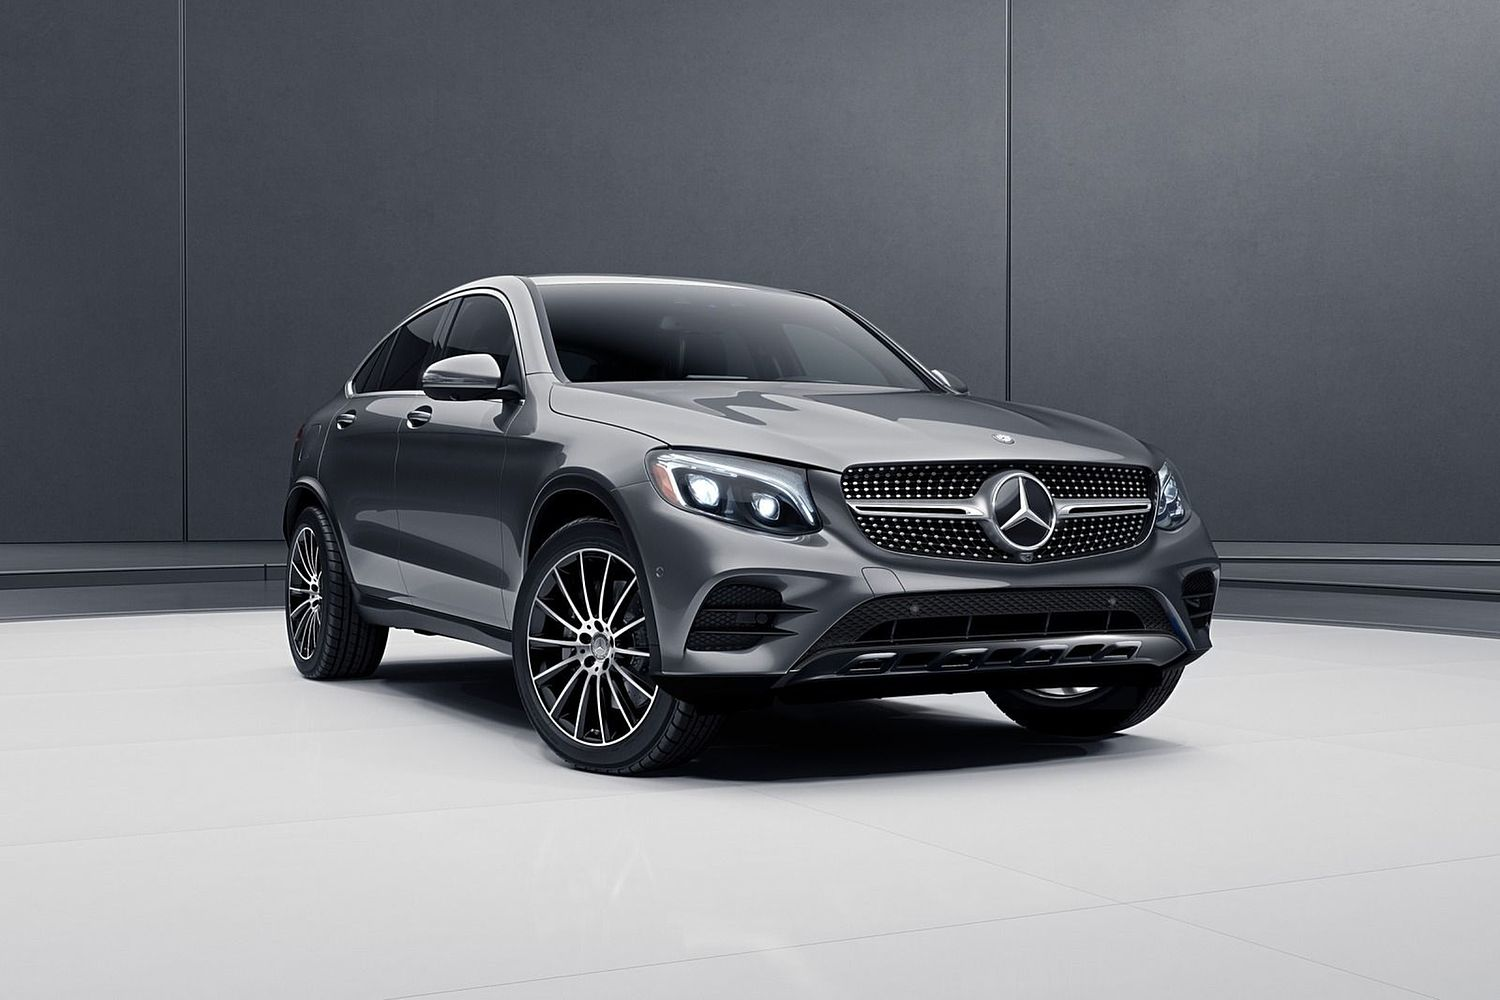 2018 mercedes benz glc class coupe suv vehie. Black Bedroom Furniture Sets. Home Design Ideas